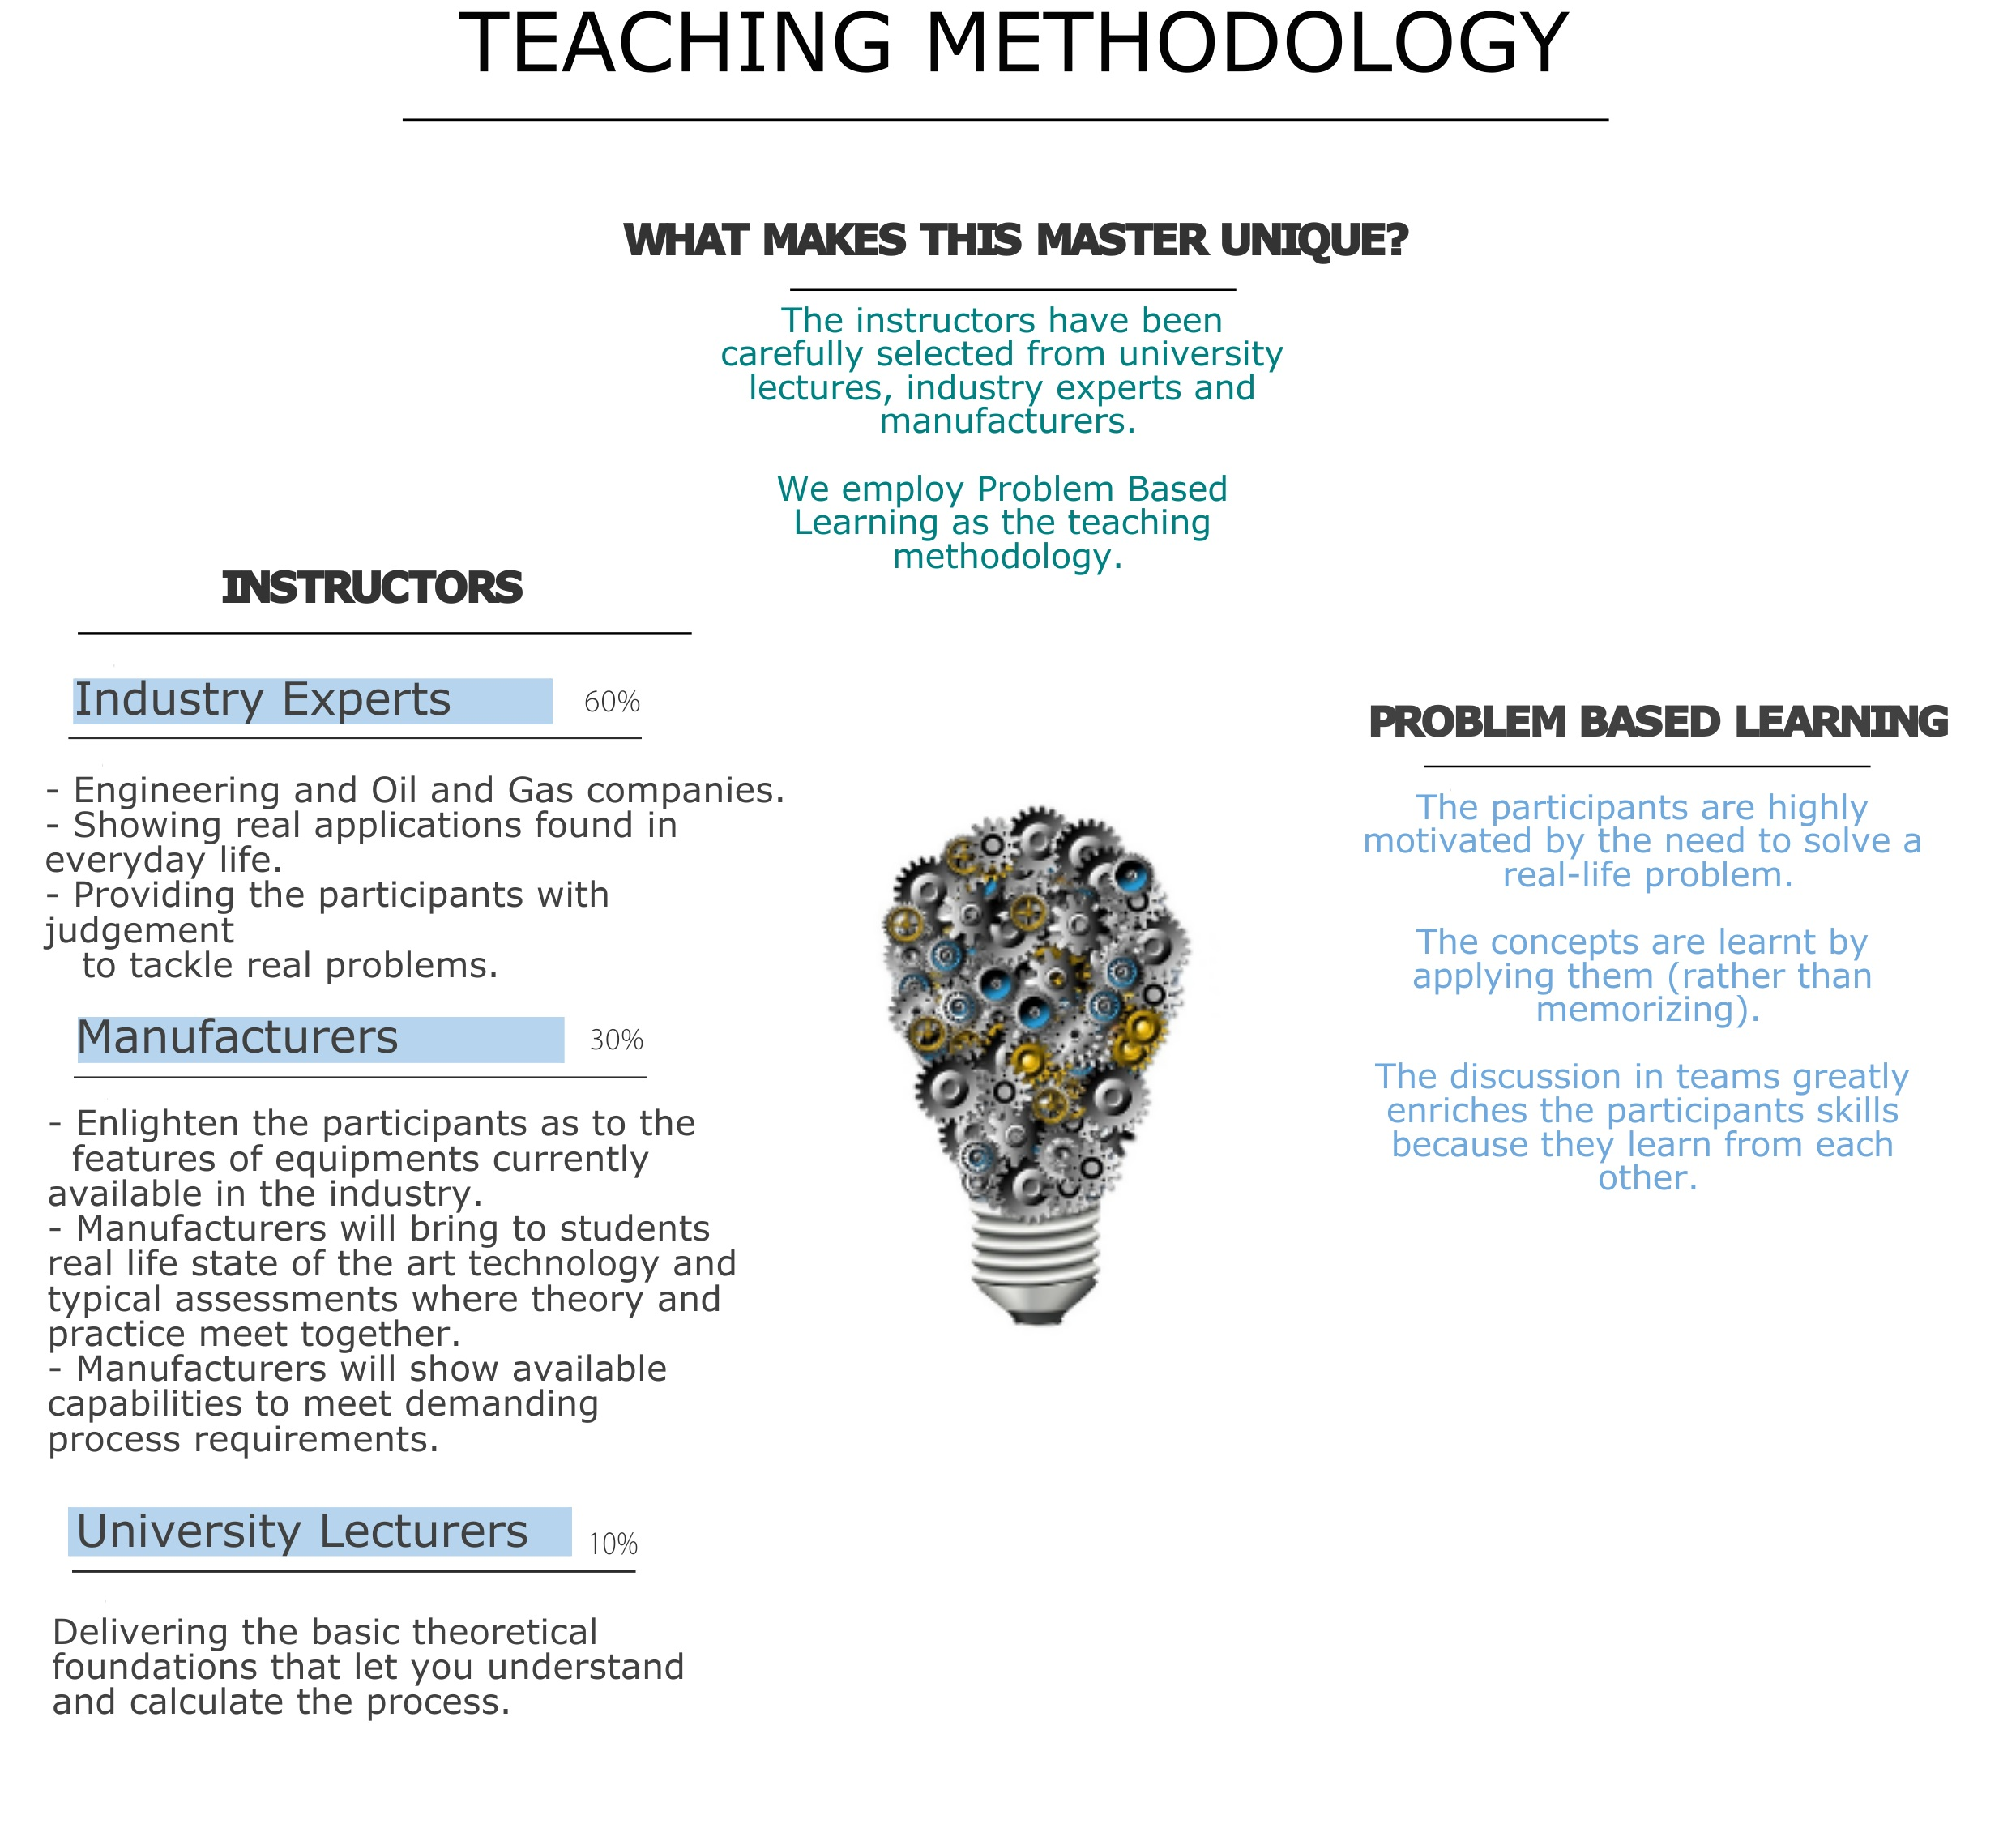 Teachingmethodology